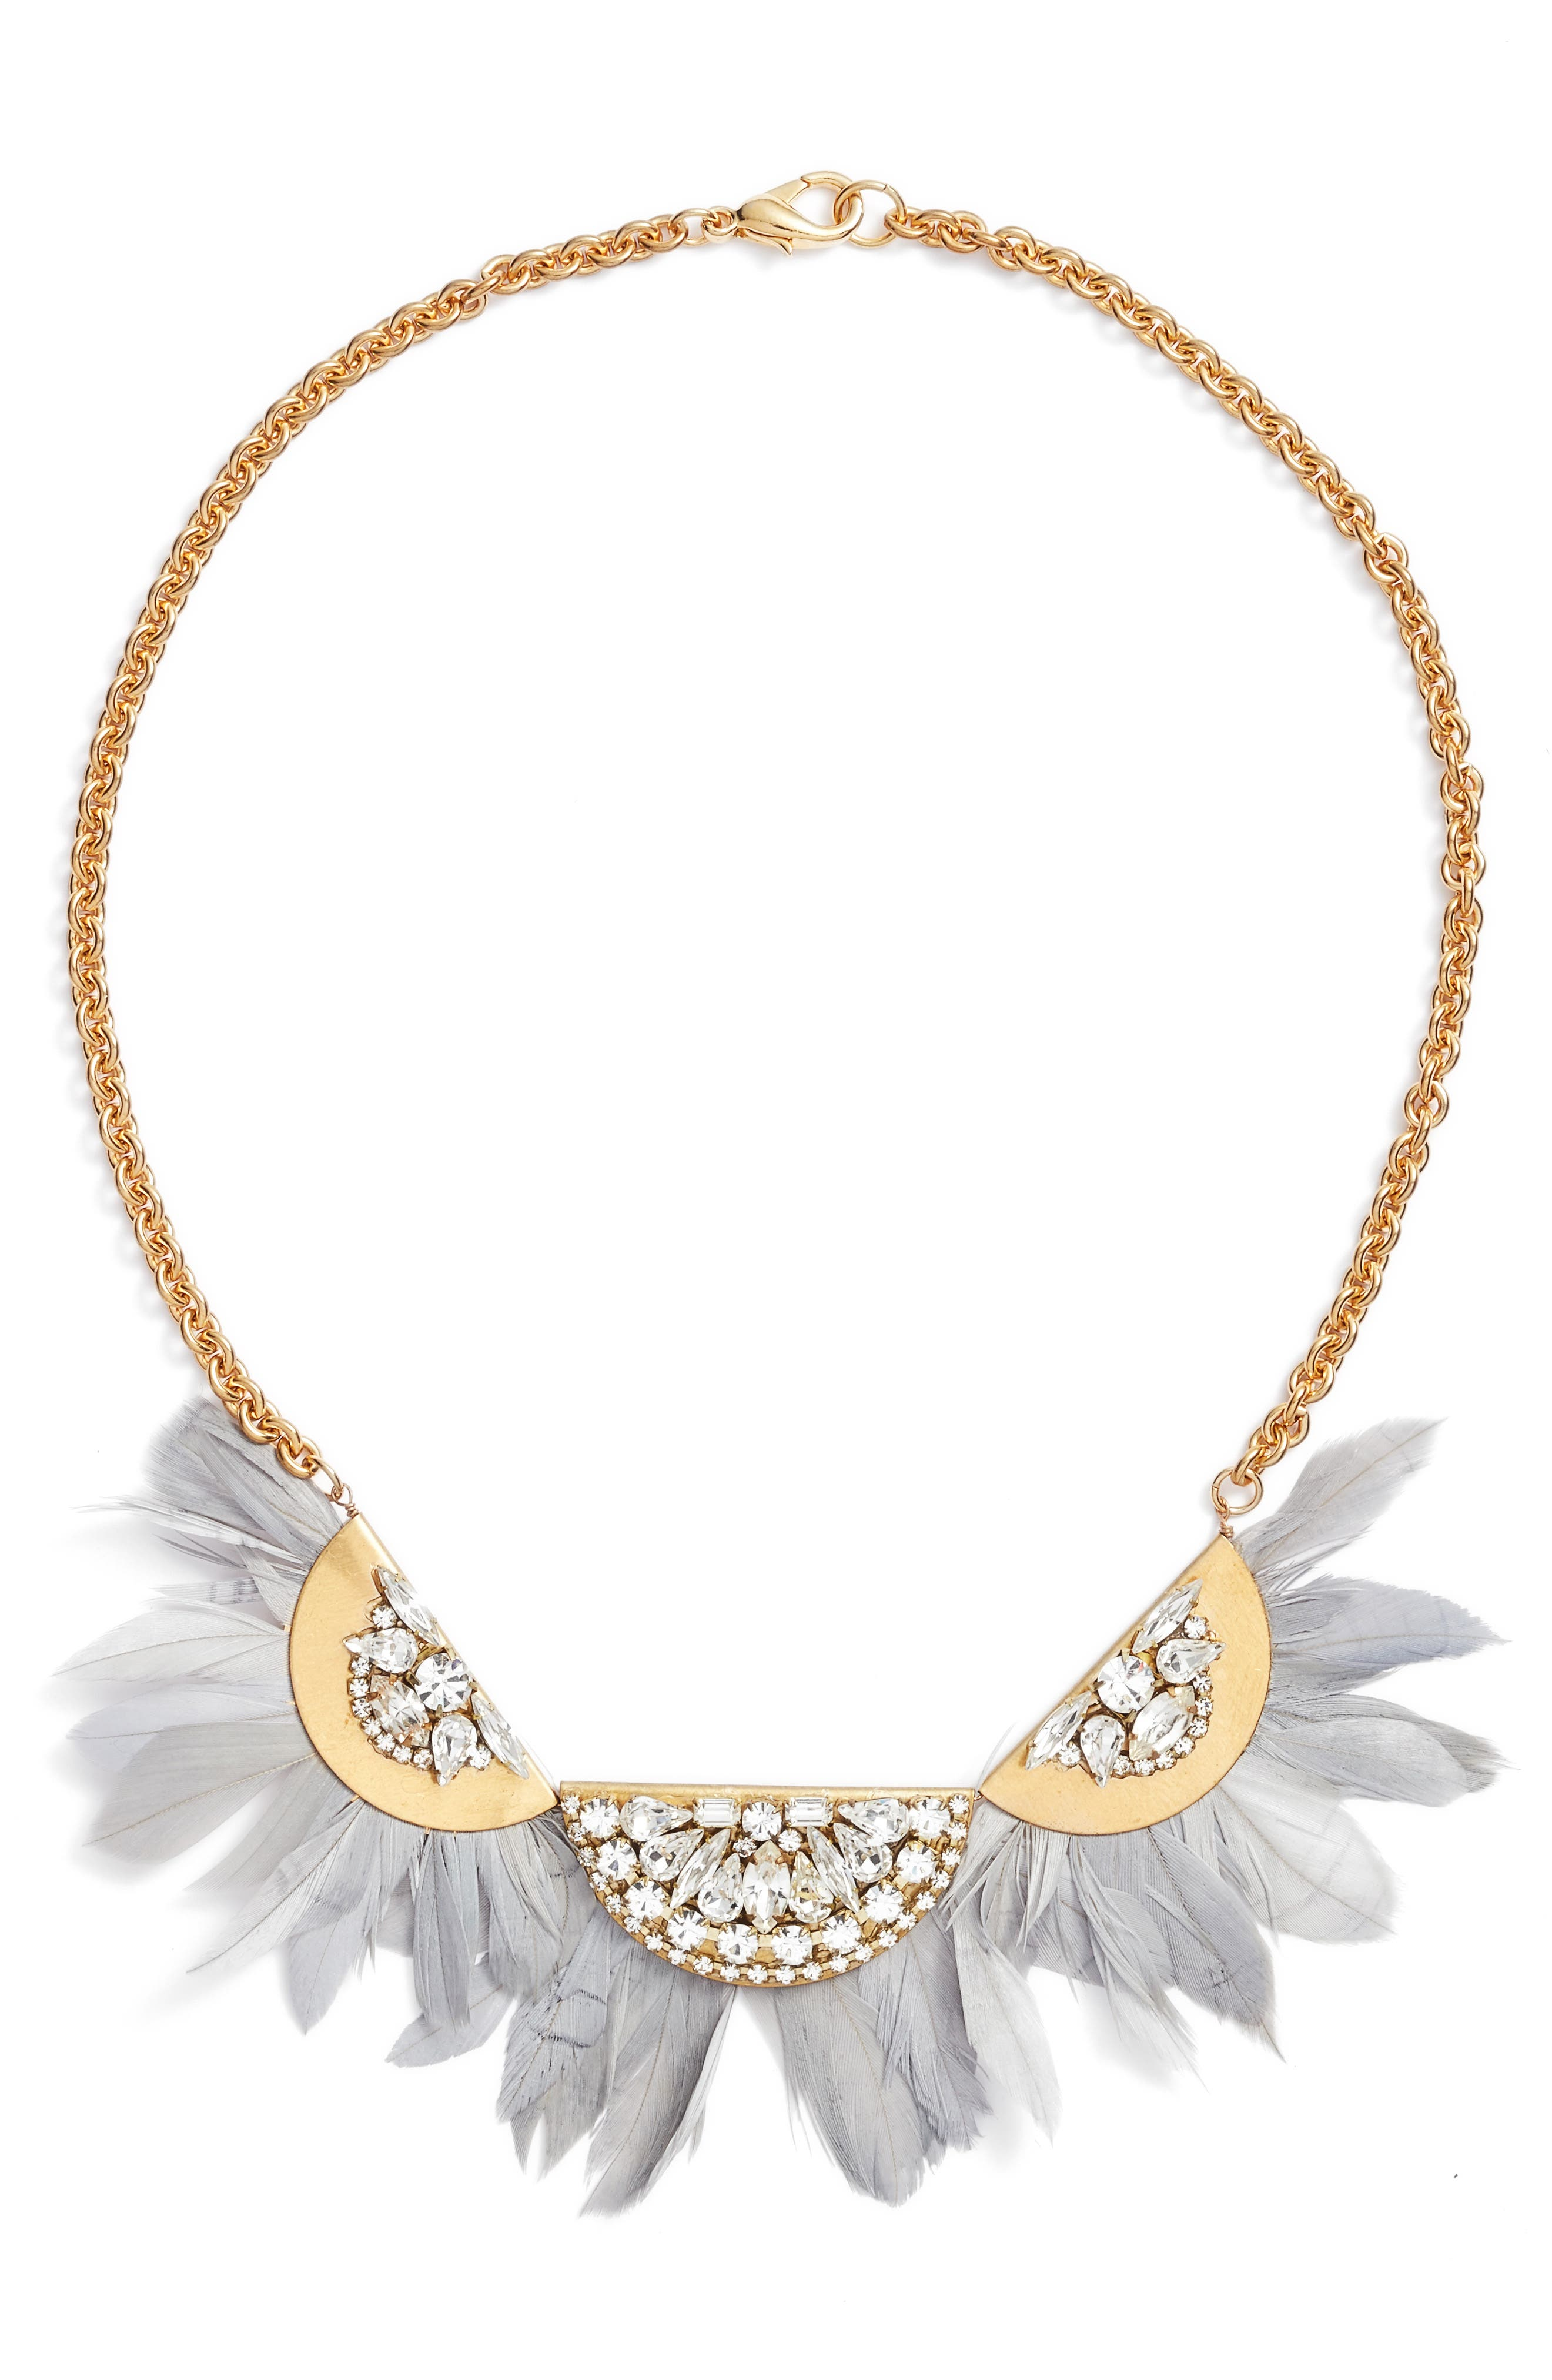 Feather Bib Necklace,                             Main thumbnail 1, color,                             Grey/ Gold